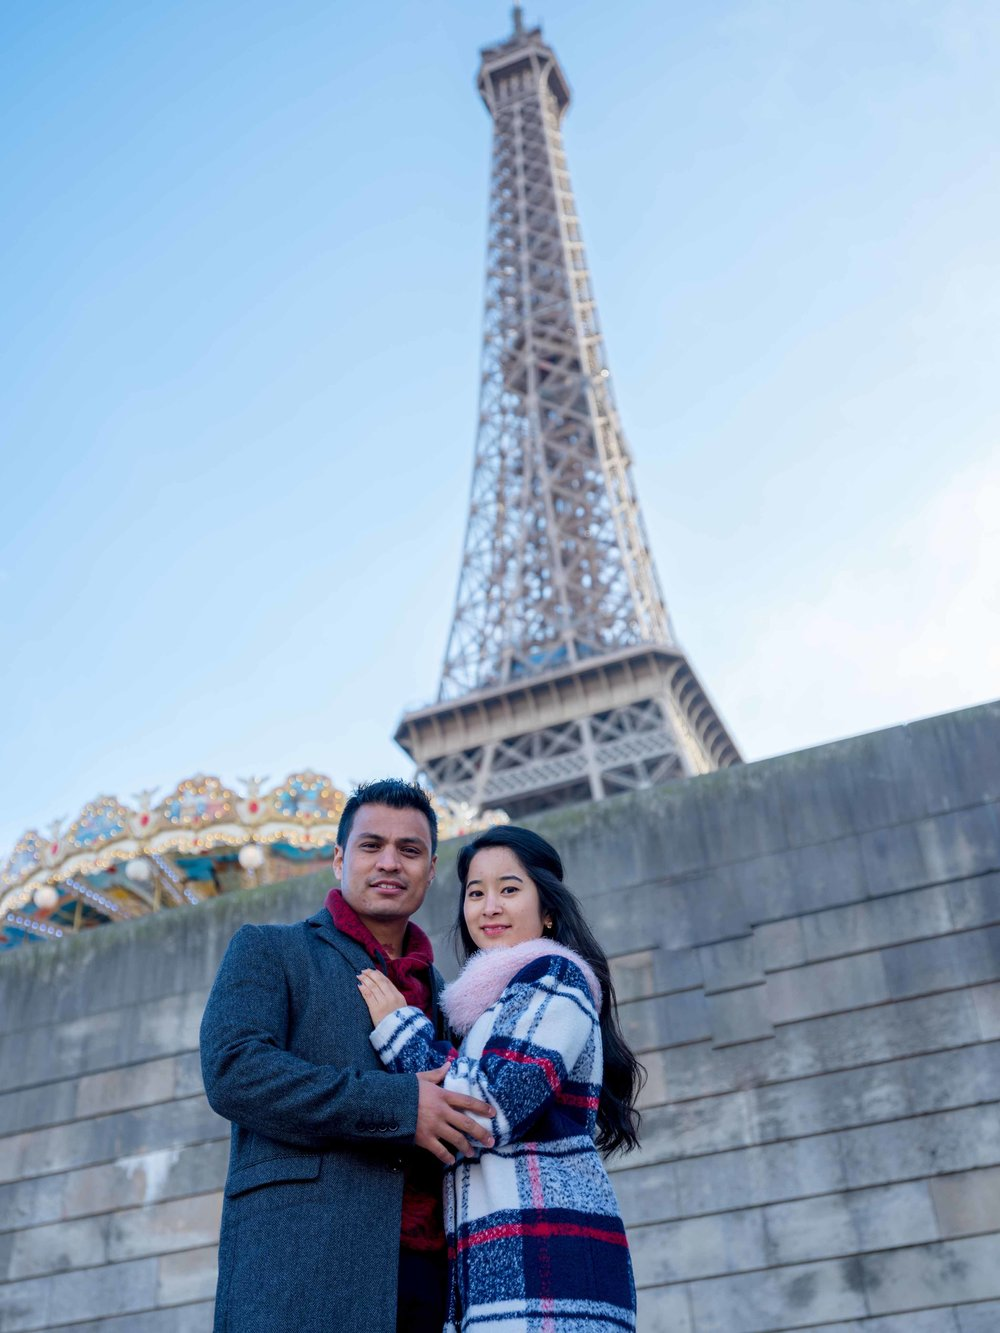 engaged couple at eiffel tower in paris with carousel